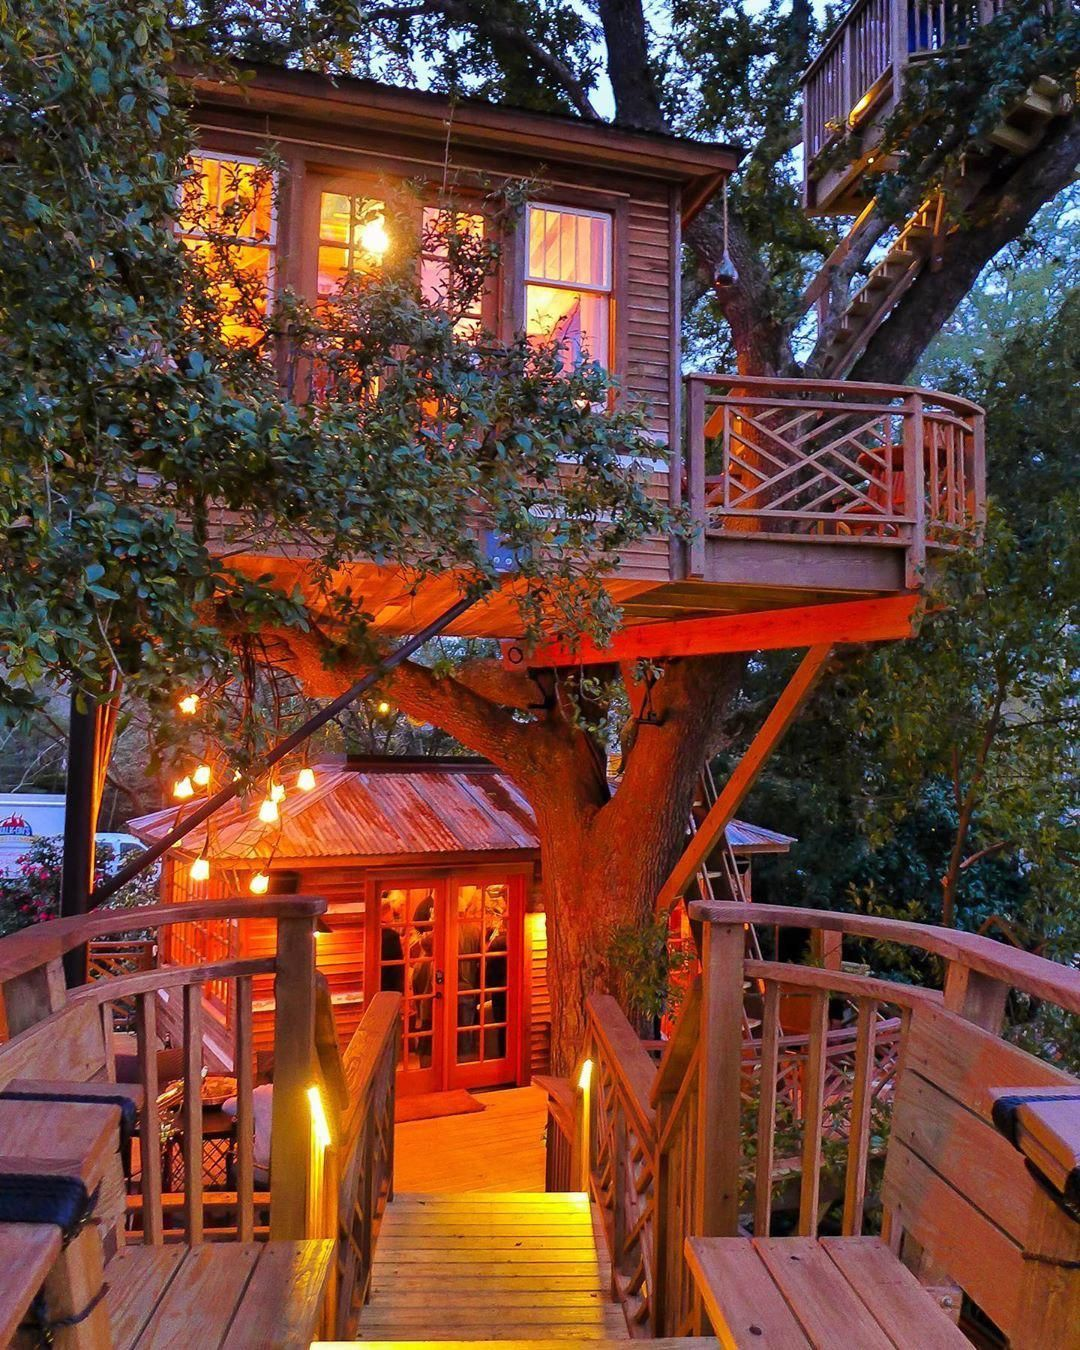 Pin By Julie Chauvin On Treehouses Log Cabins Cottages Wood Houses In 2020 Tree House Plans Cool Tree Houses Beautiful Tree Houses